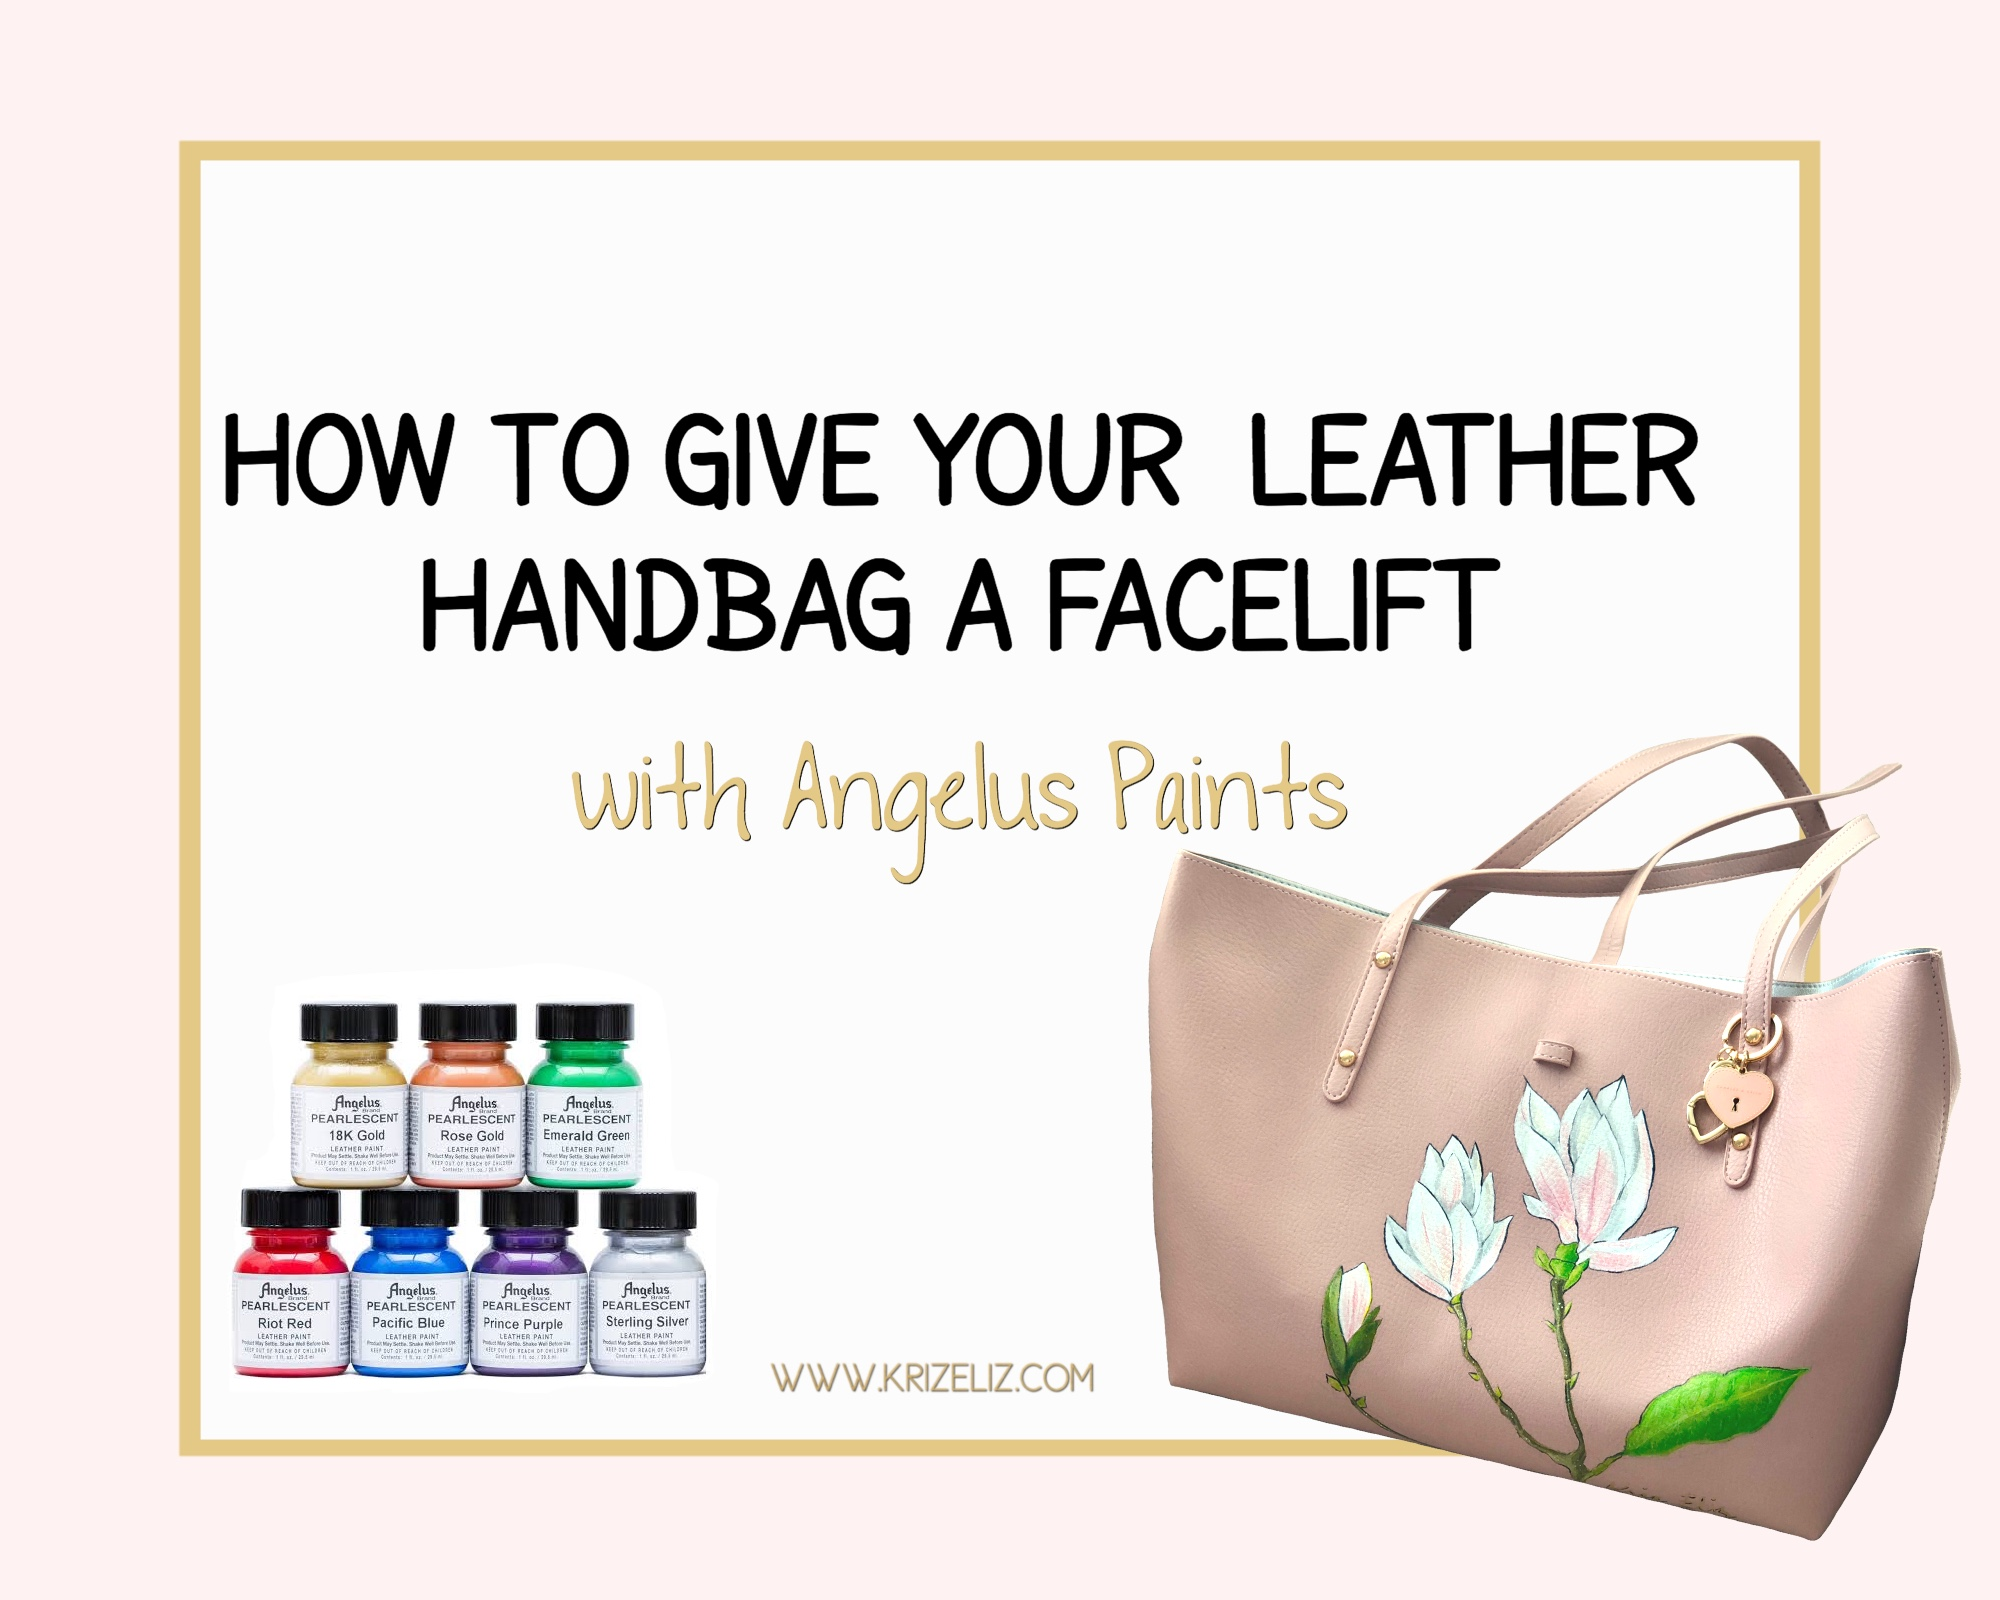 How to give your handbag a facelift with Angelus Paints